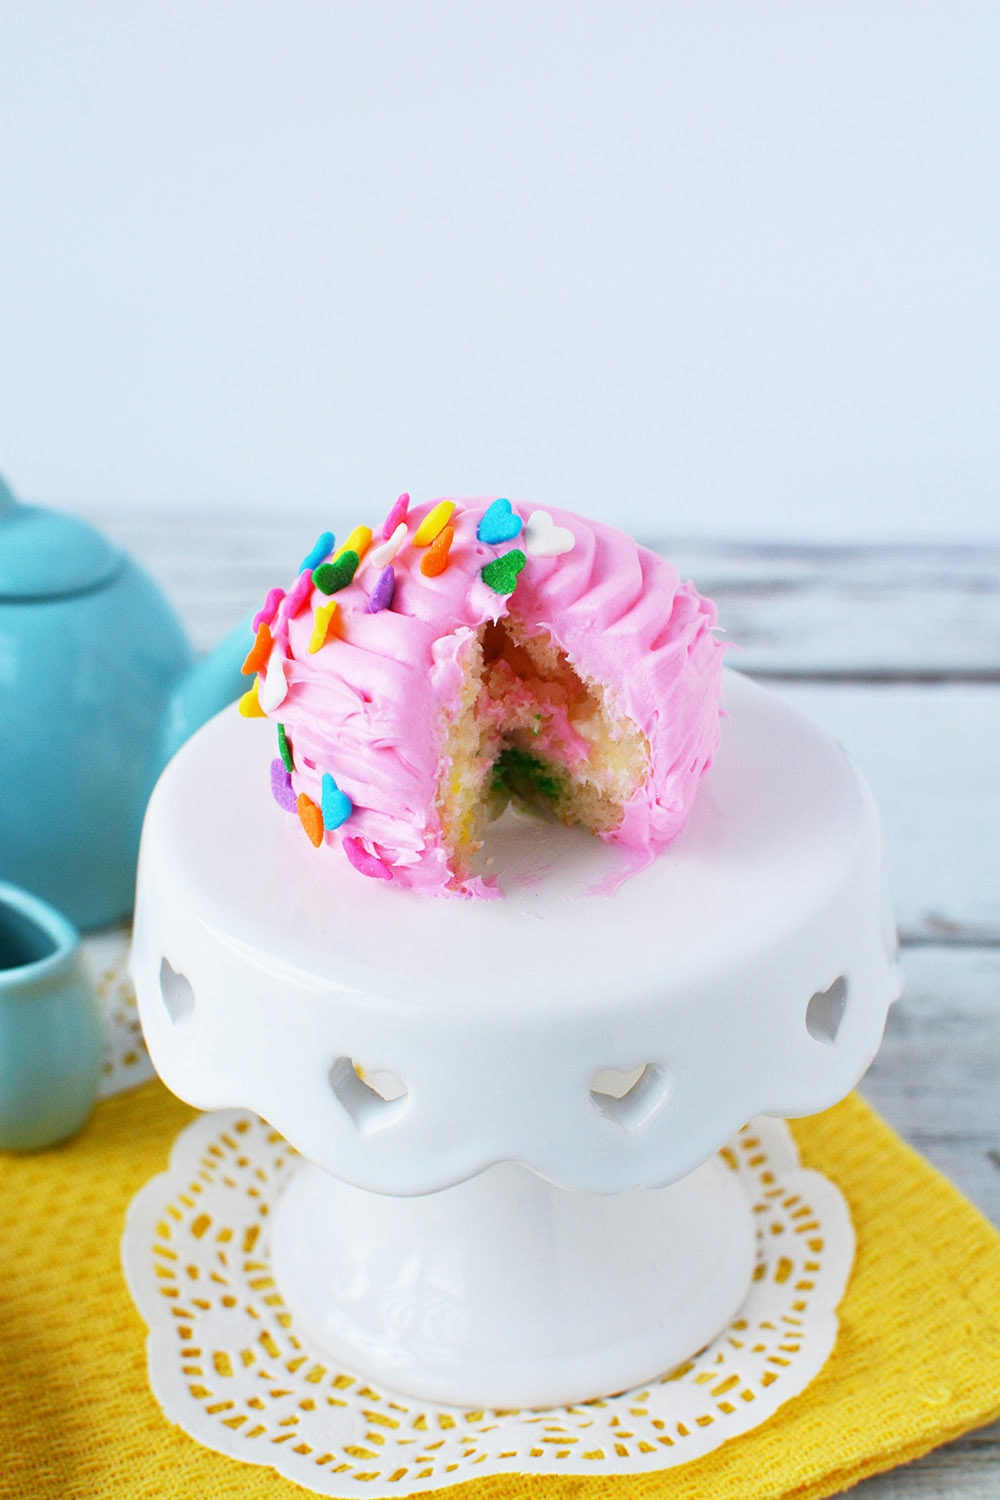 Pink mini cake with a slice cut from it.